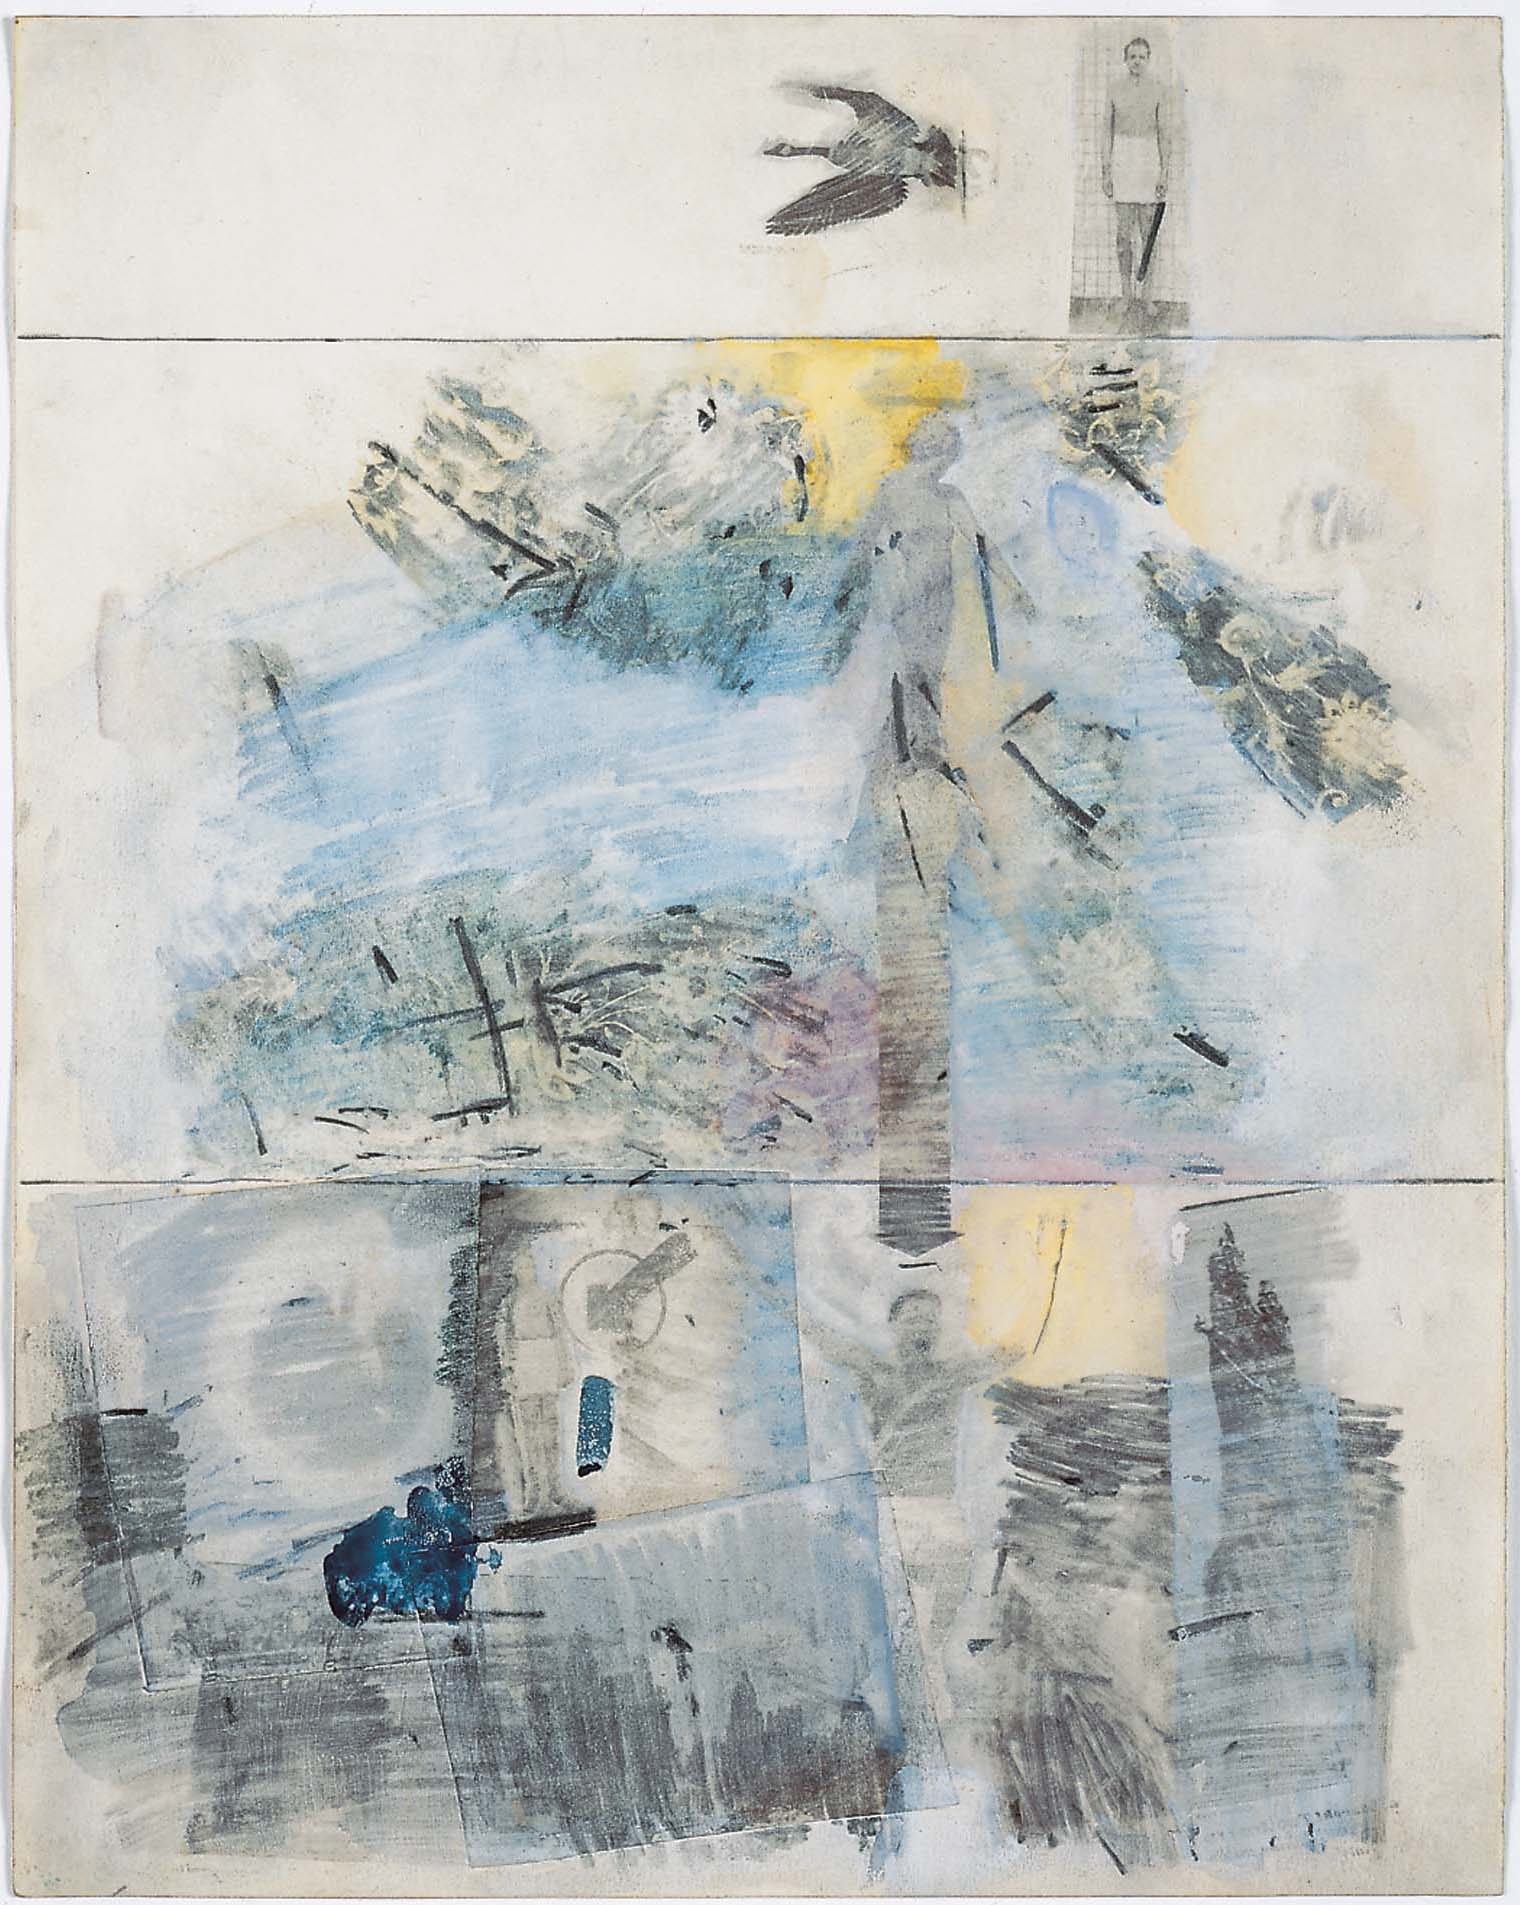 From the  Rauschenberg Foundation website